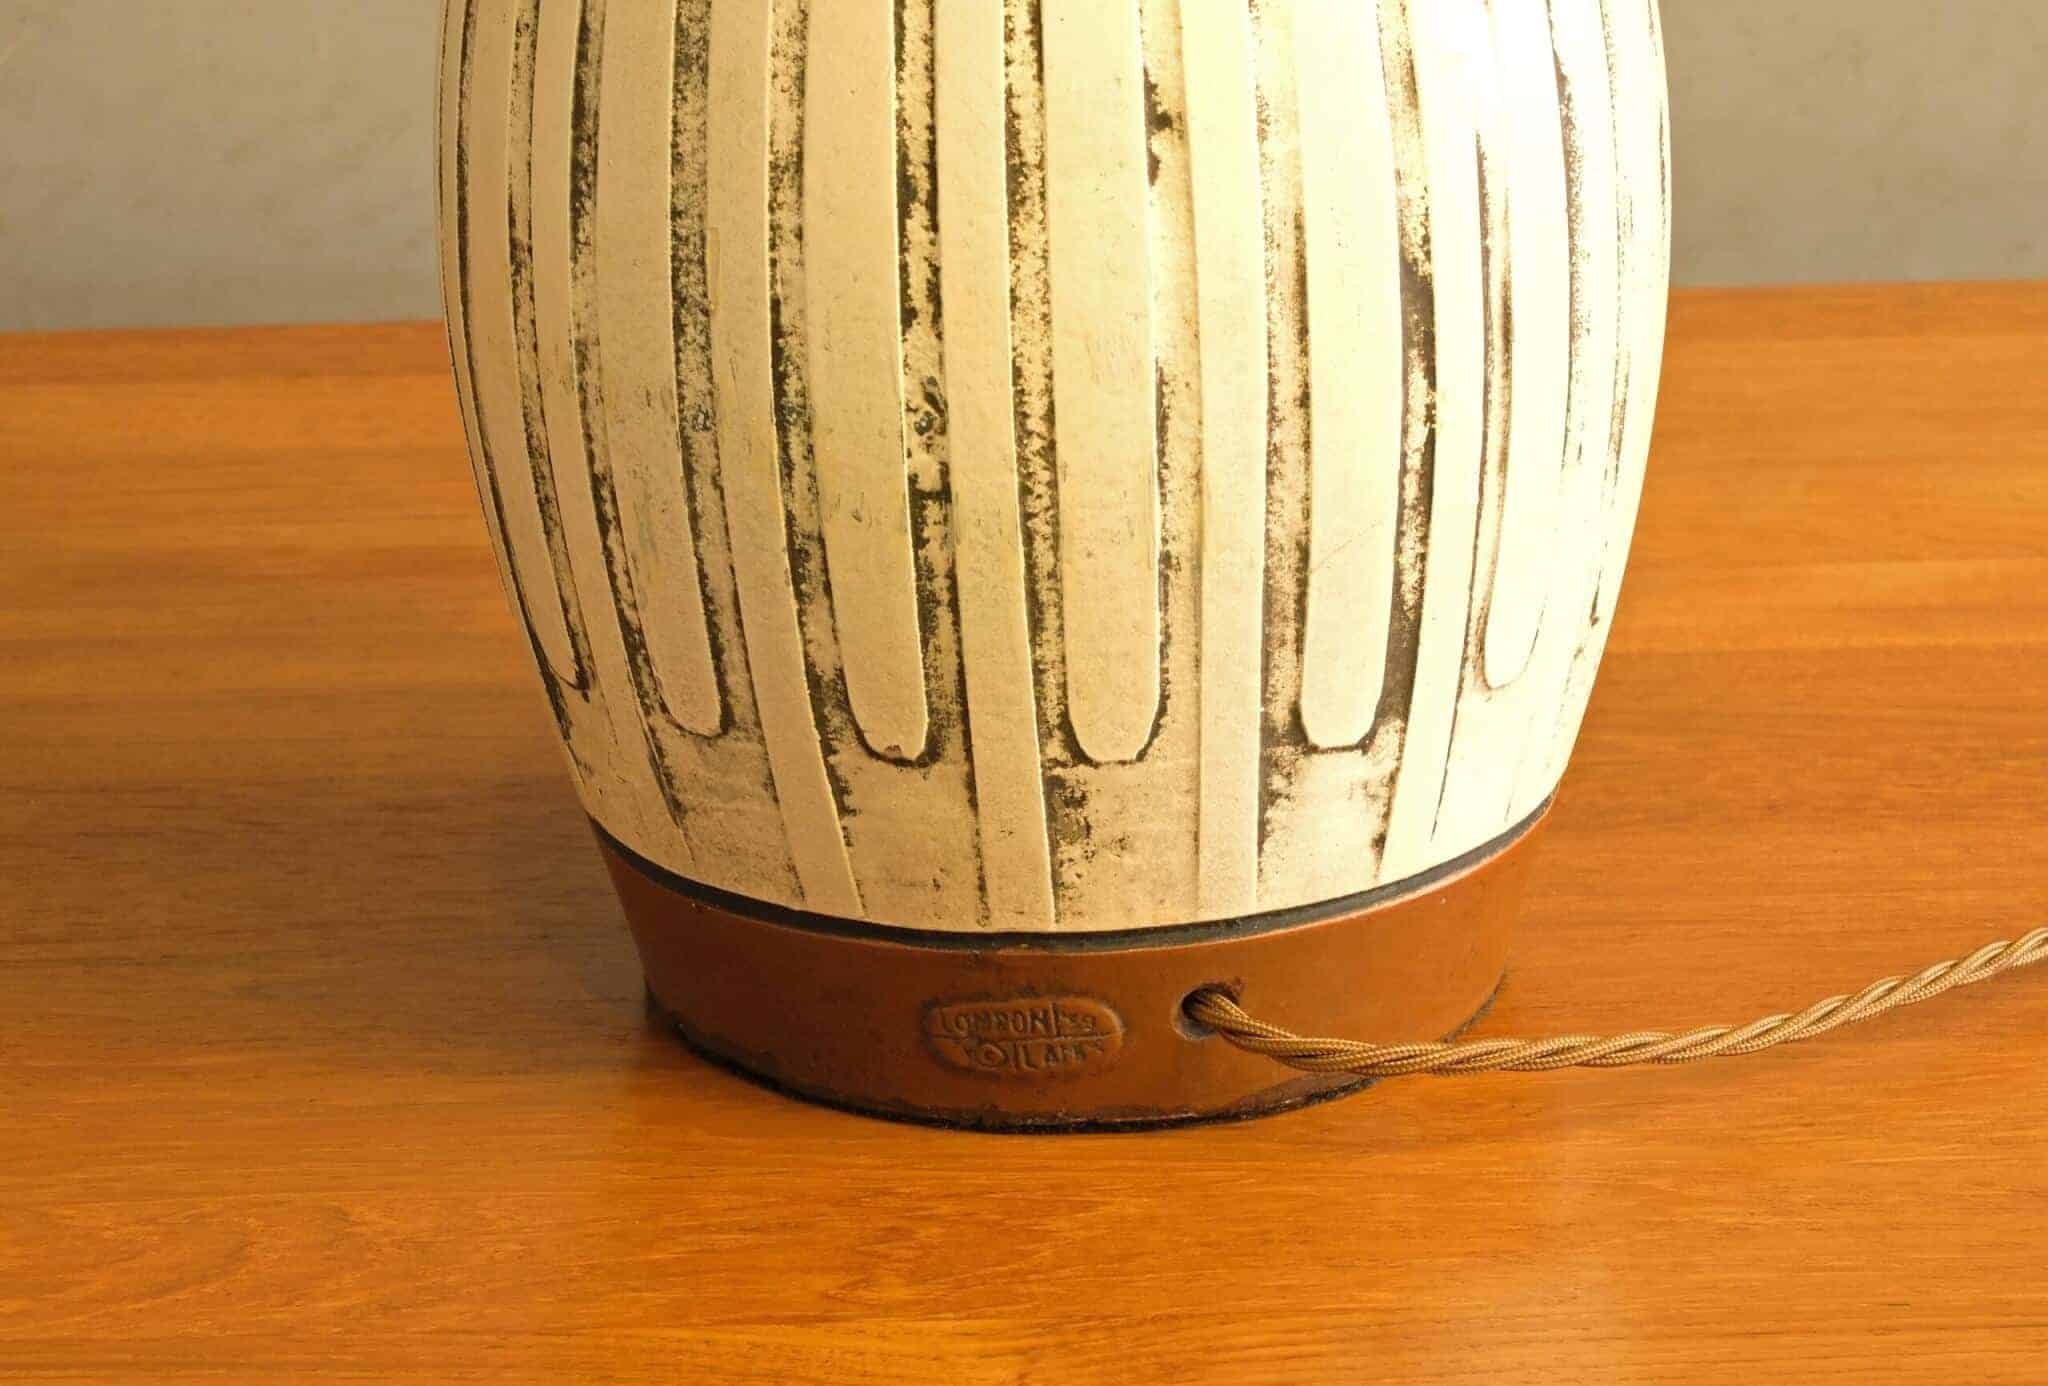 Pair of table lamps. London Lamp Co. 1959